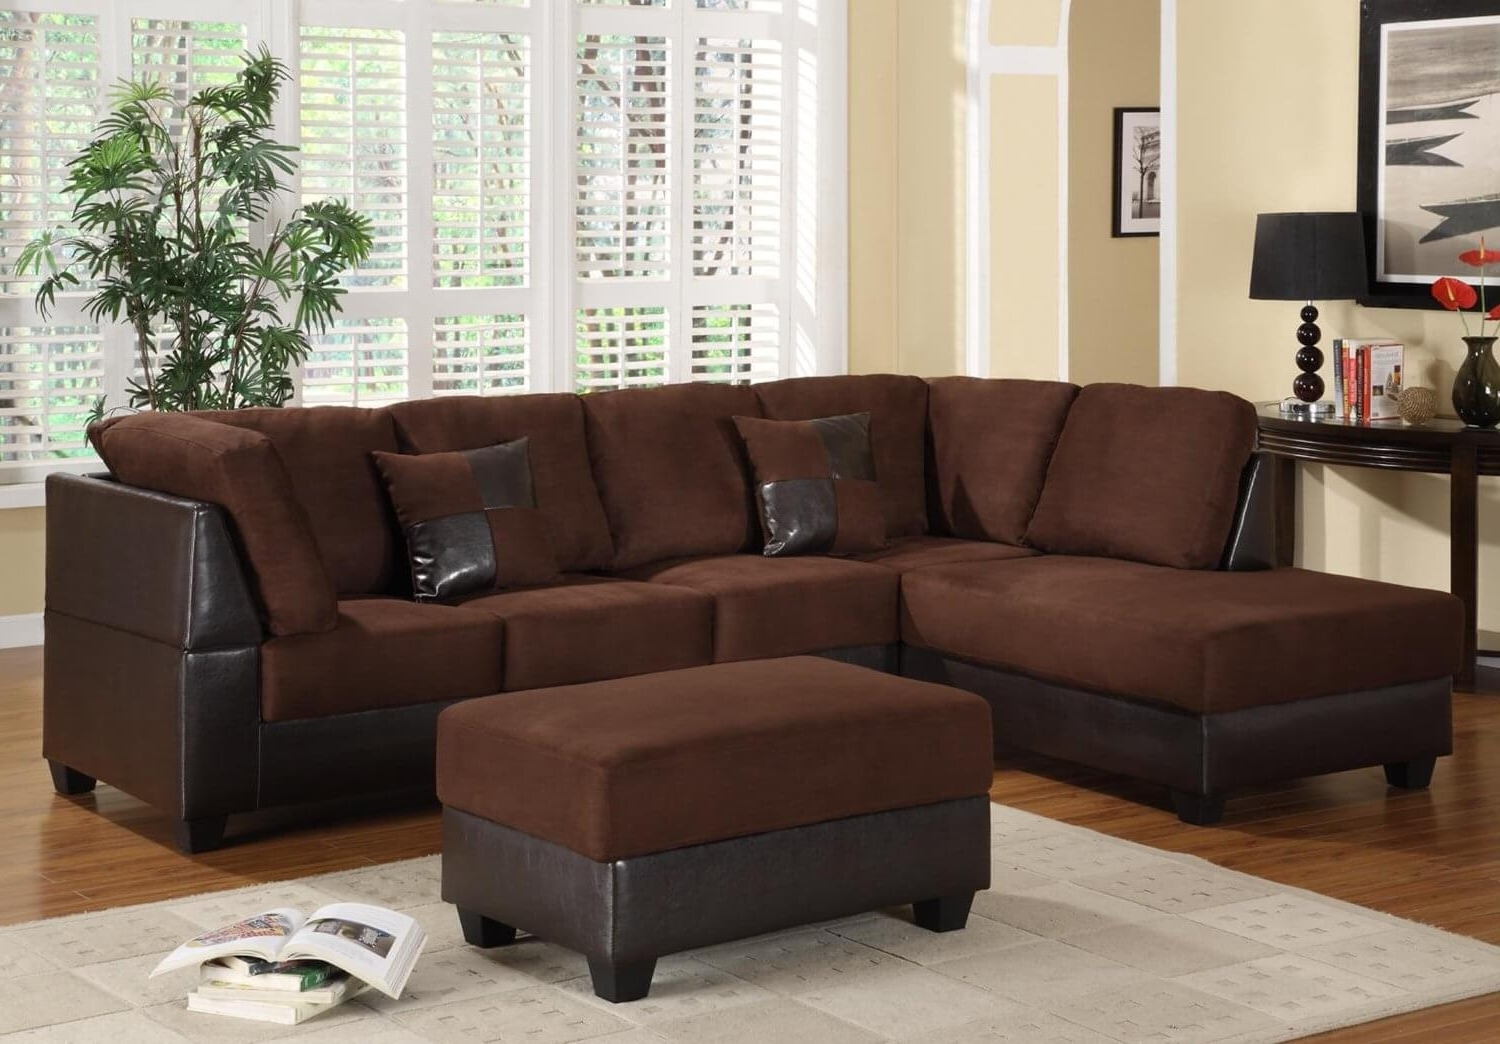 Sectional Sofas Under 200 Intended For Widely Used Sofa (View 6 of 20)